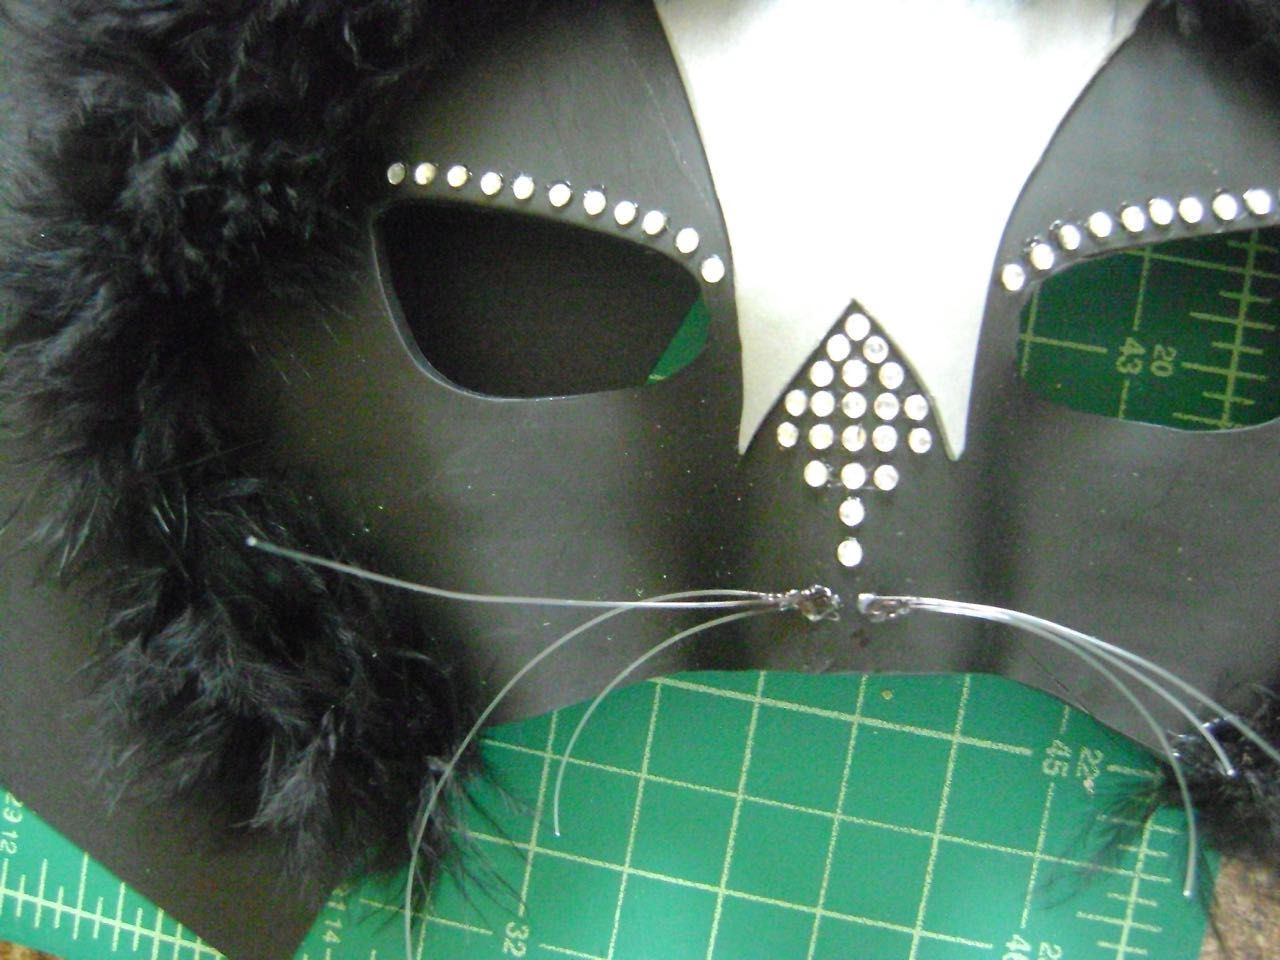 step 13 - Cut six, three-inch pieces of clear fishing line or beading thread. Join three at one end with hot glue then hot glue the joined ends below the bottom rhinestone. Repeat with the other three pieces. Trim the whiskers to the desired length. Hot glue the large rhinestone over the whiskers.